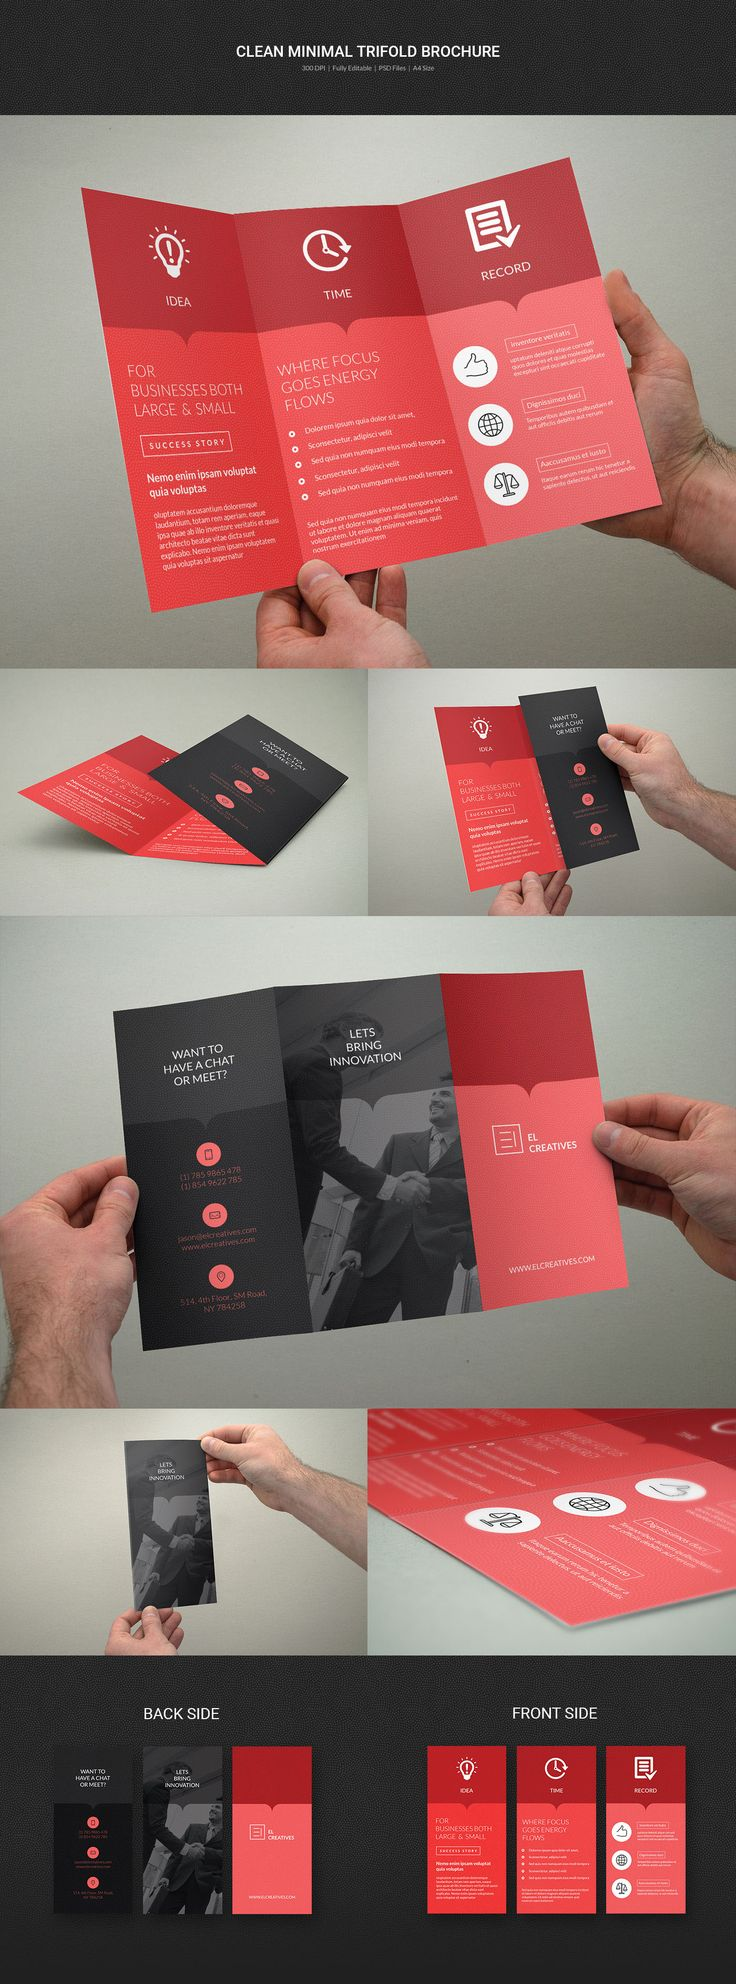 Clean Minimal Trifold Brochure on Behance